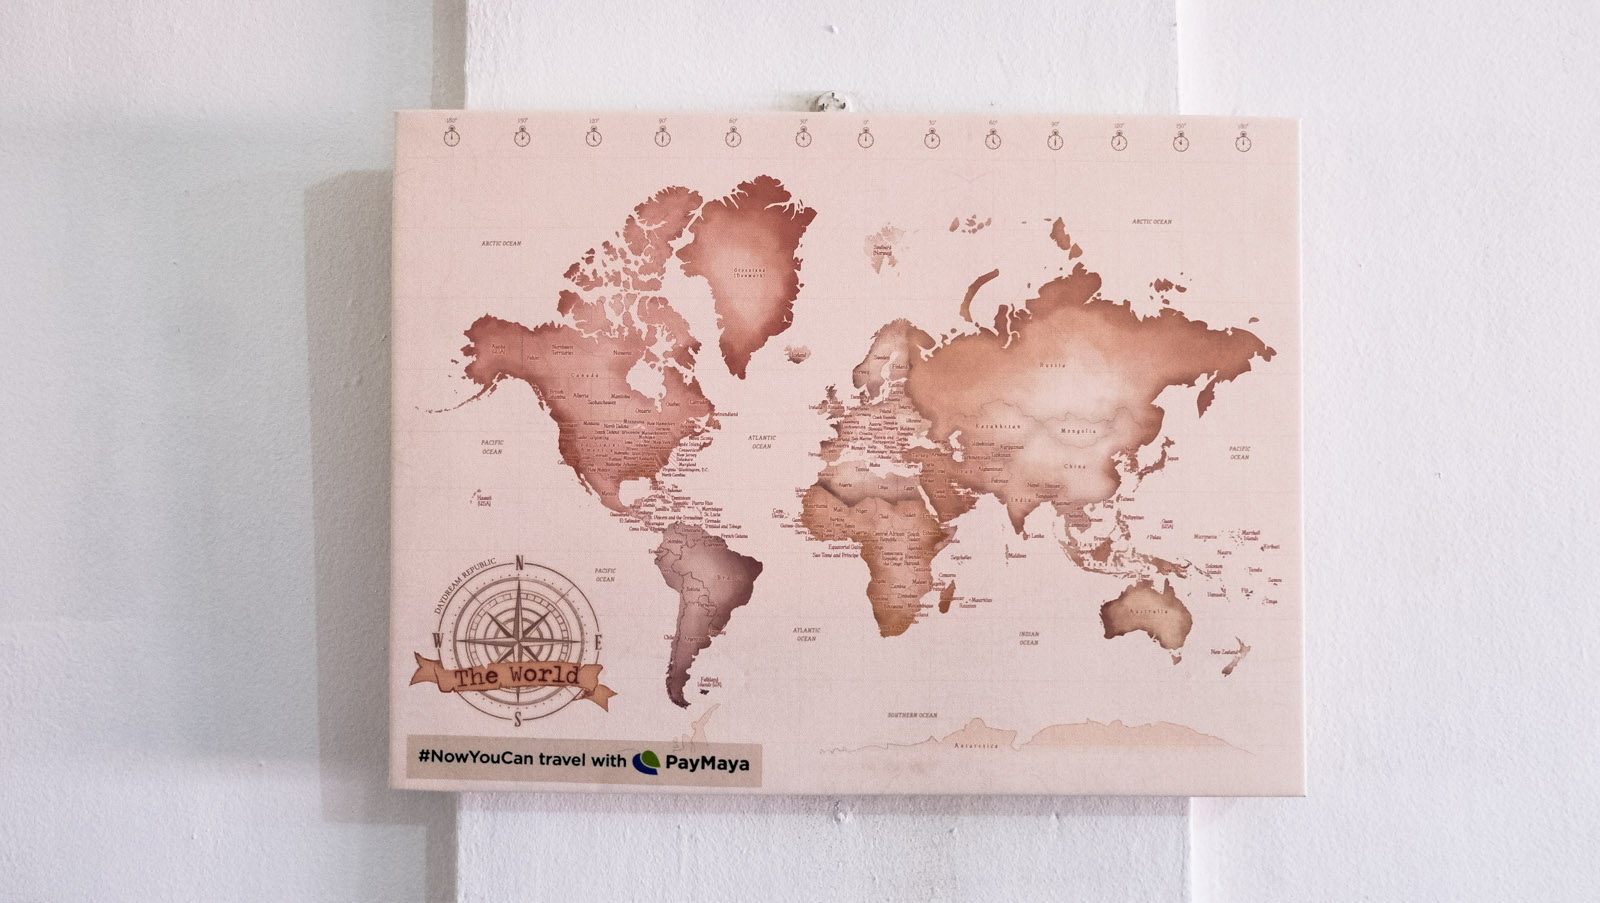 Win an all expense paid trip to asias most exciting destinations world map corkboard 1 of 1 gumiabroncs Image collections